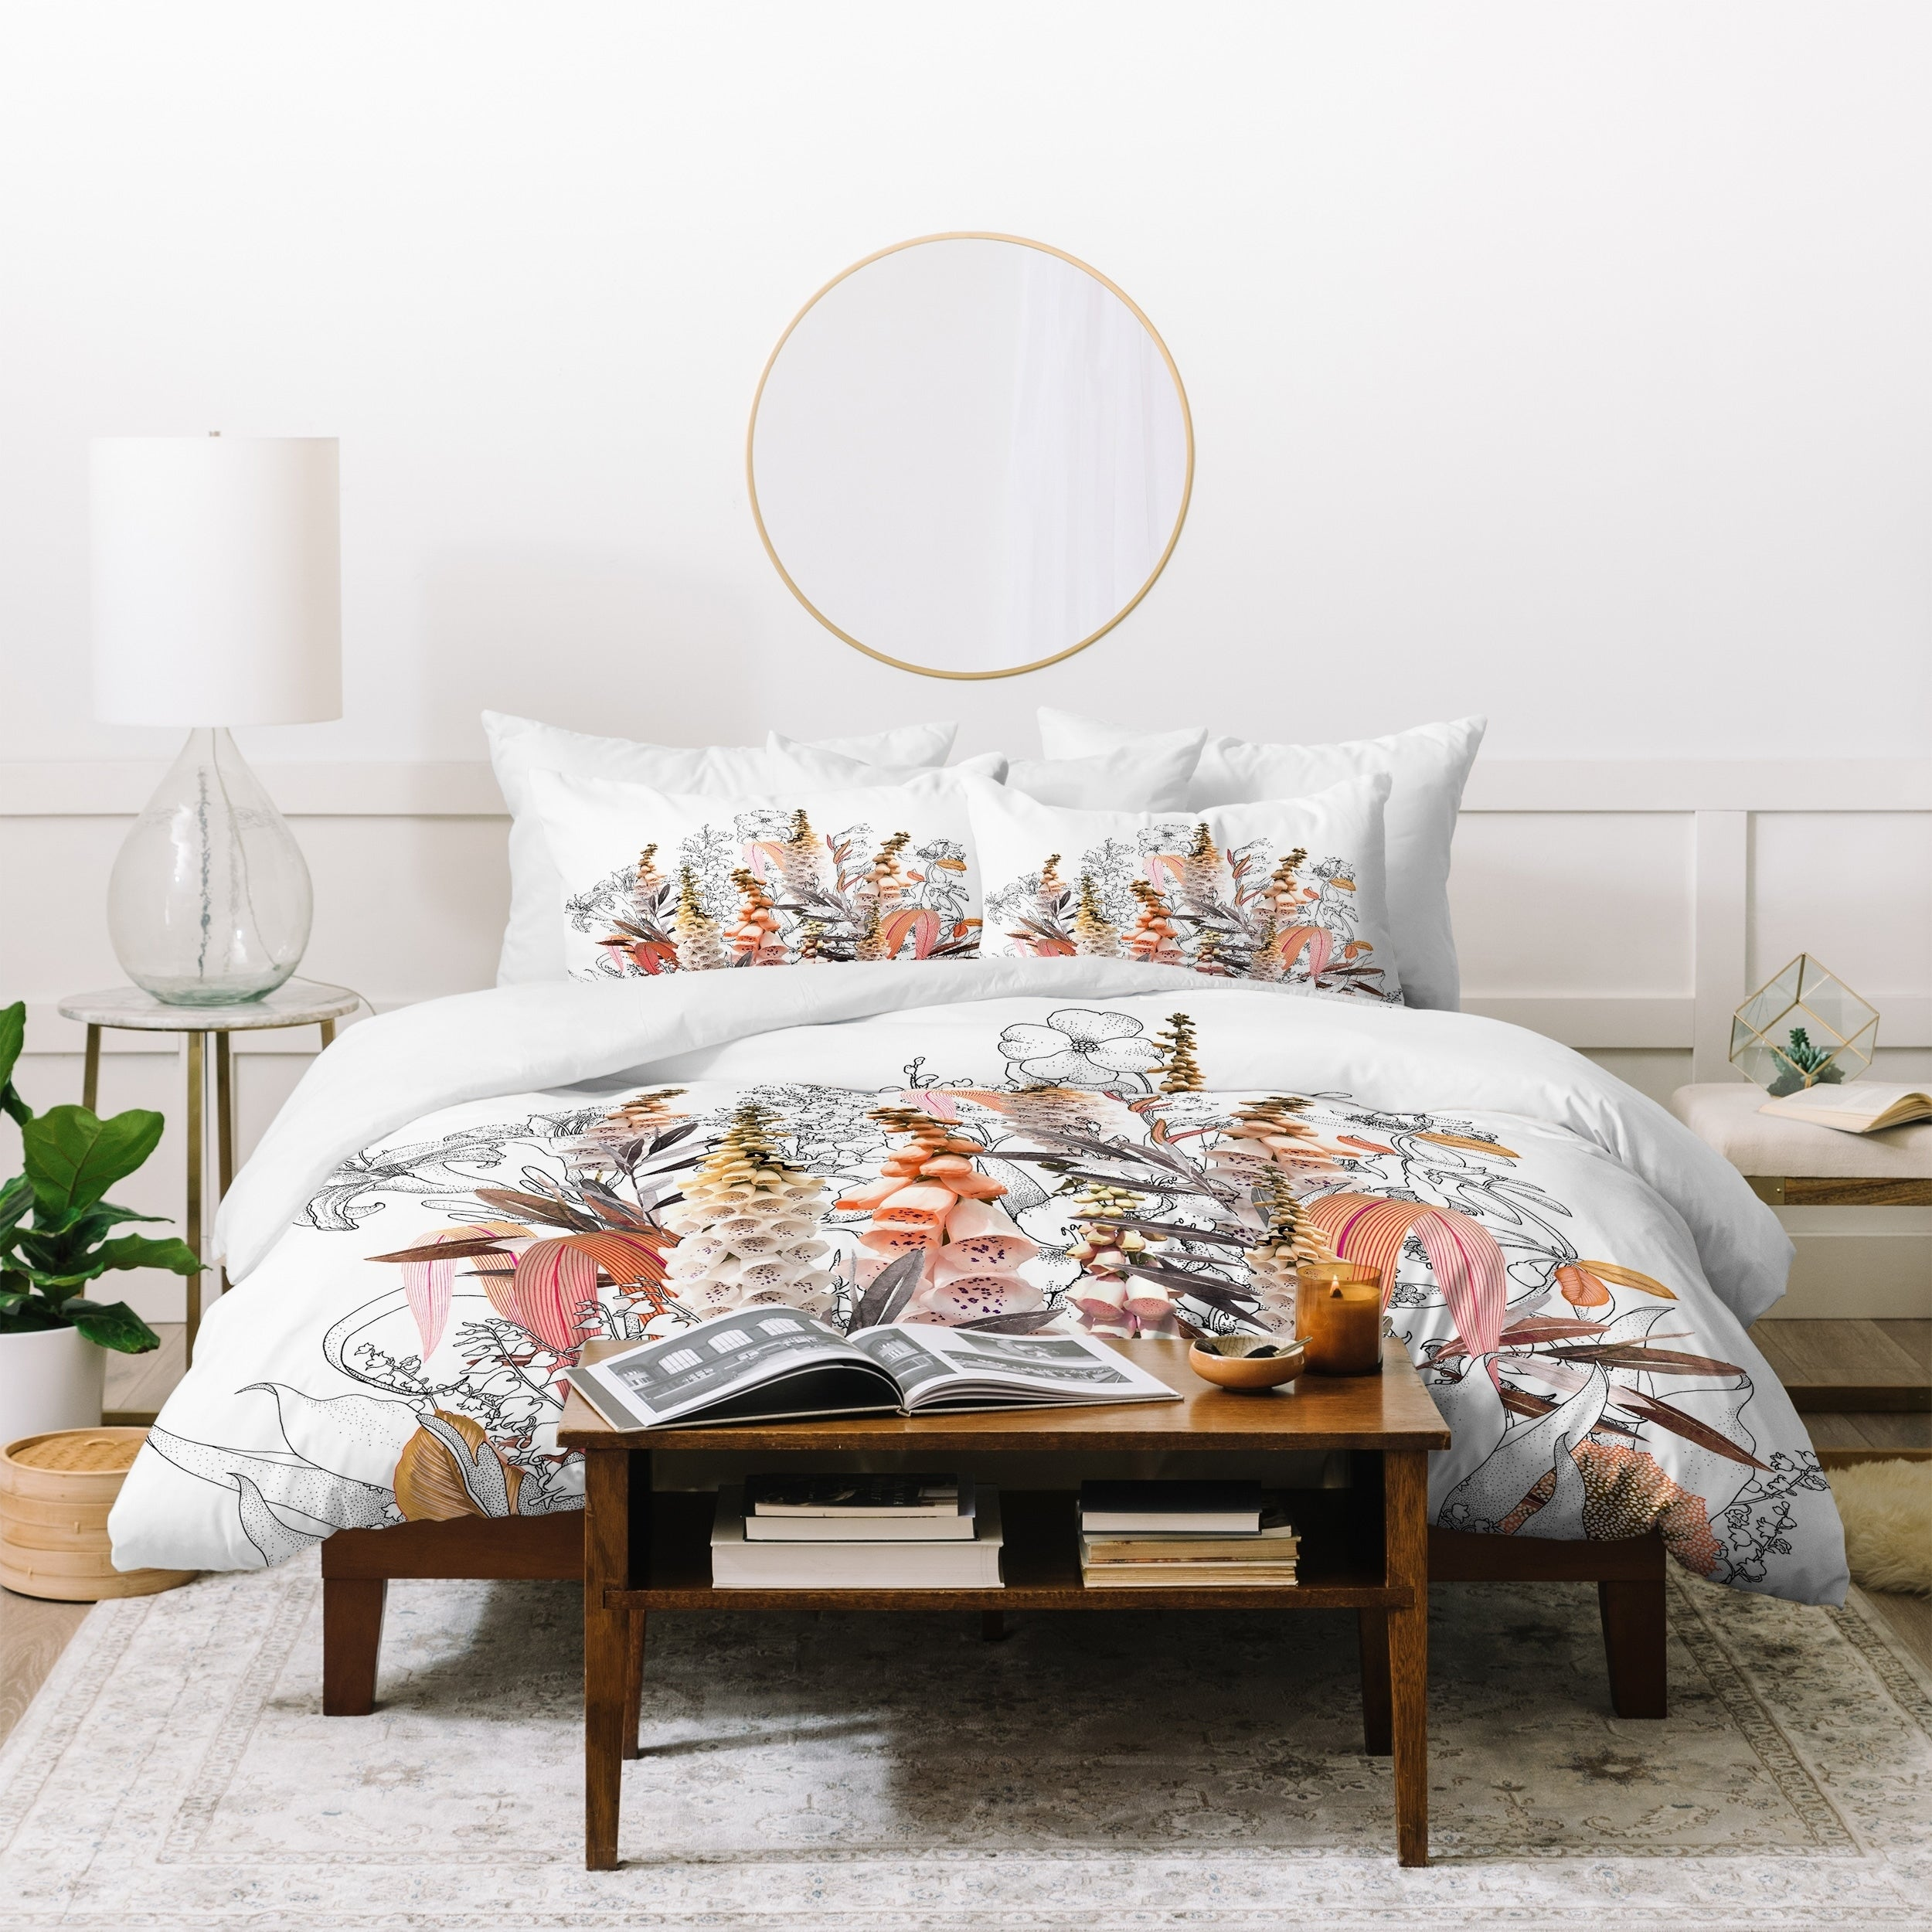 Shop iveta abolina lupines cream duvet cover set on sale free shipping today overstock com 21454022